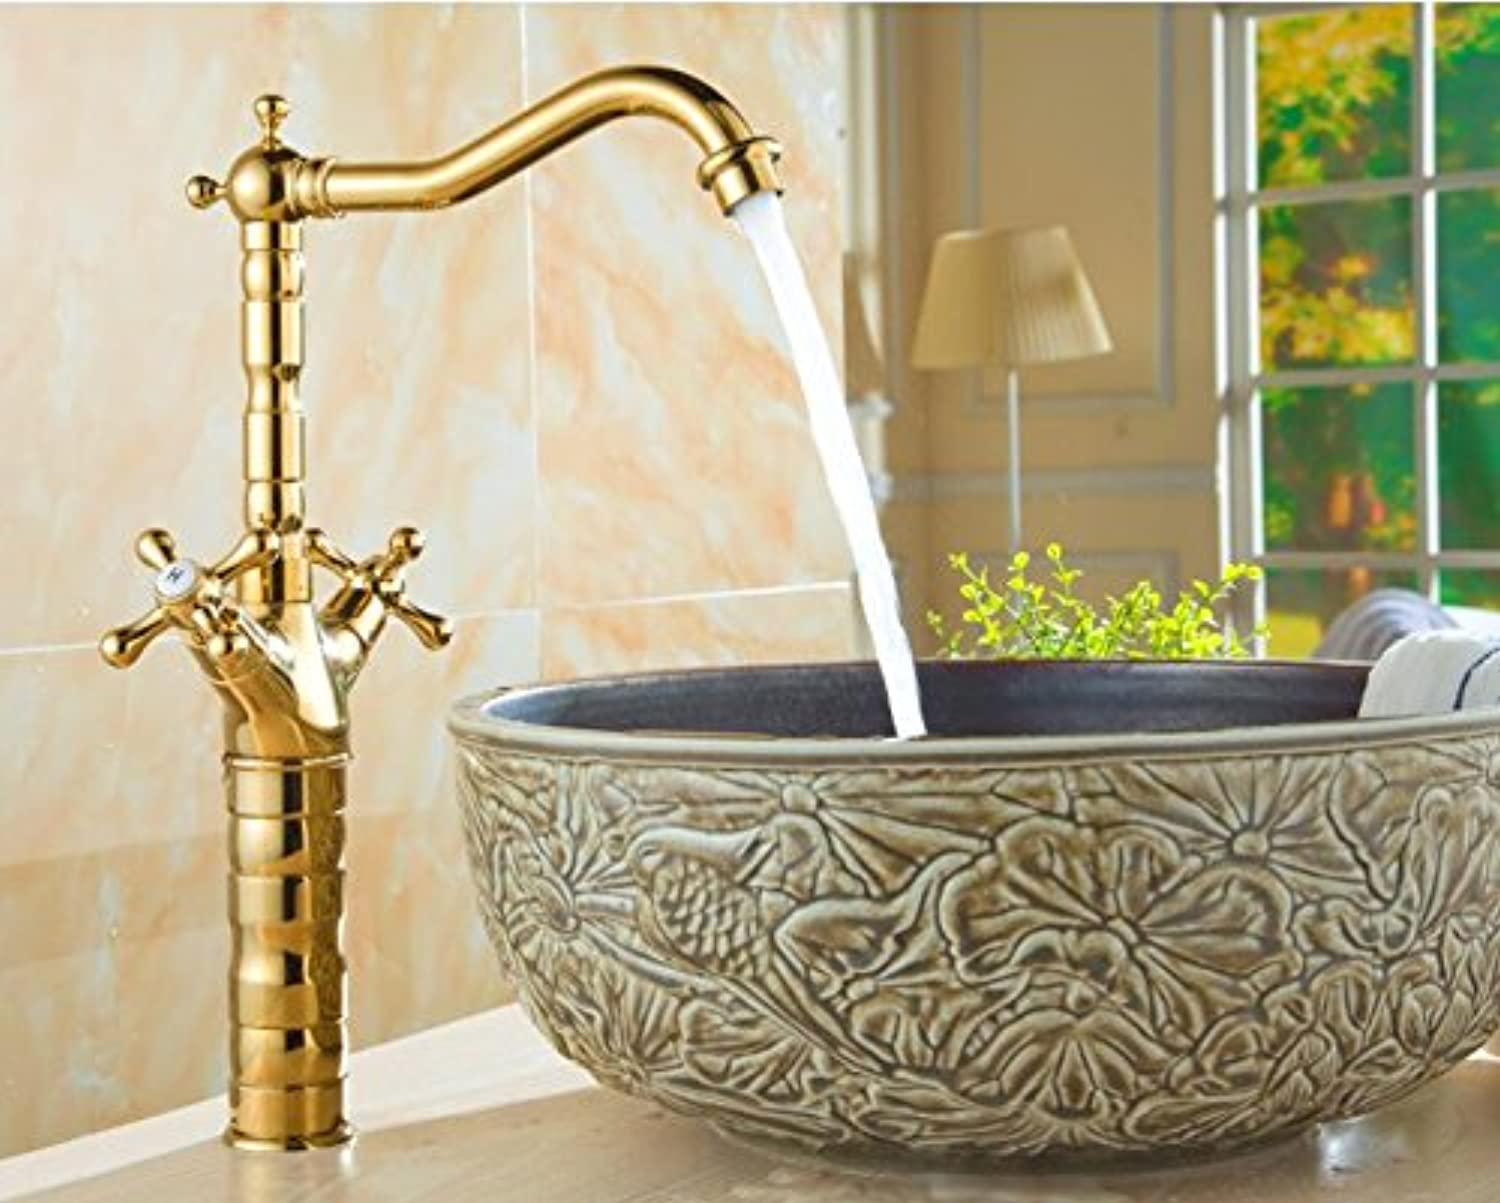 Makej Cold and Hot Water Kitchen Faucet golden Deck Mounted Faucet Dual Handle Sink Mixer Washbasin Tap A